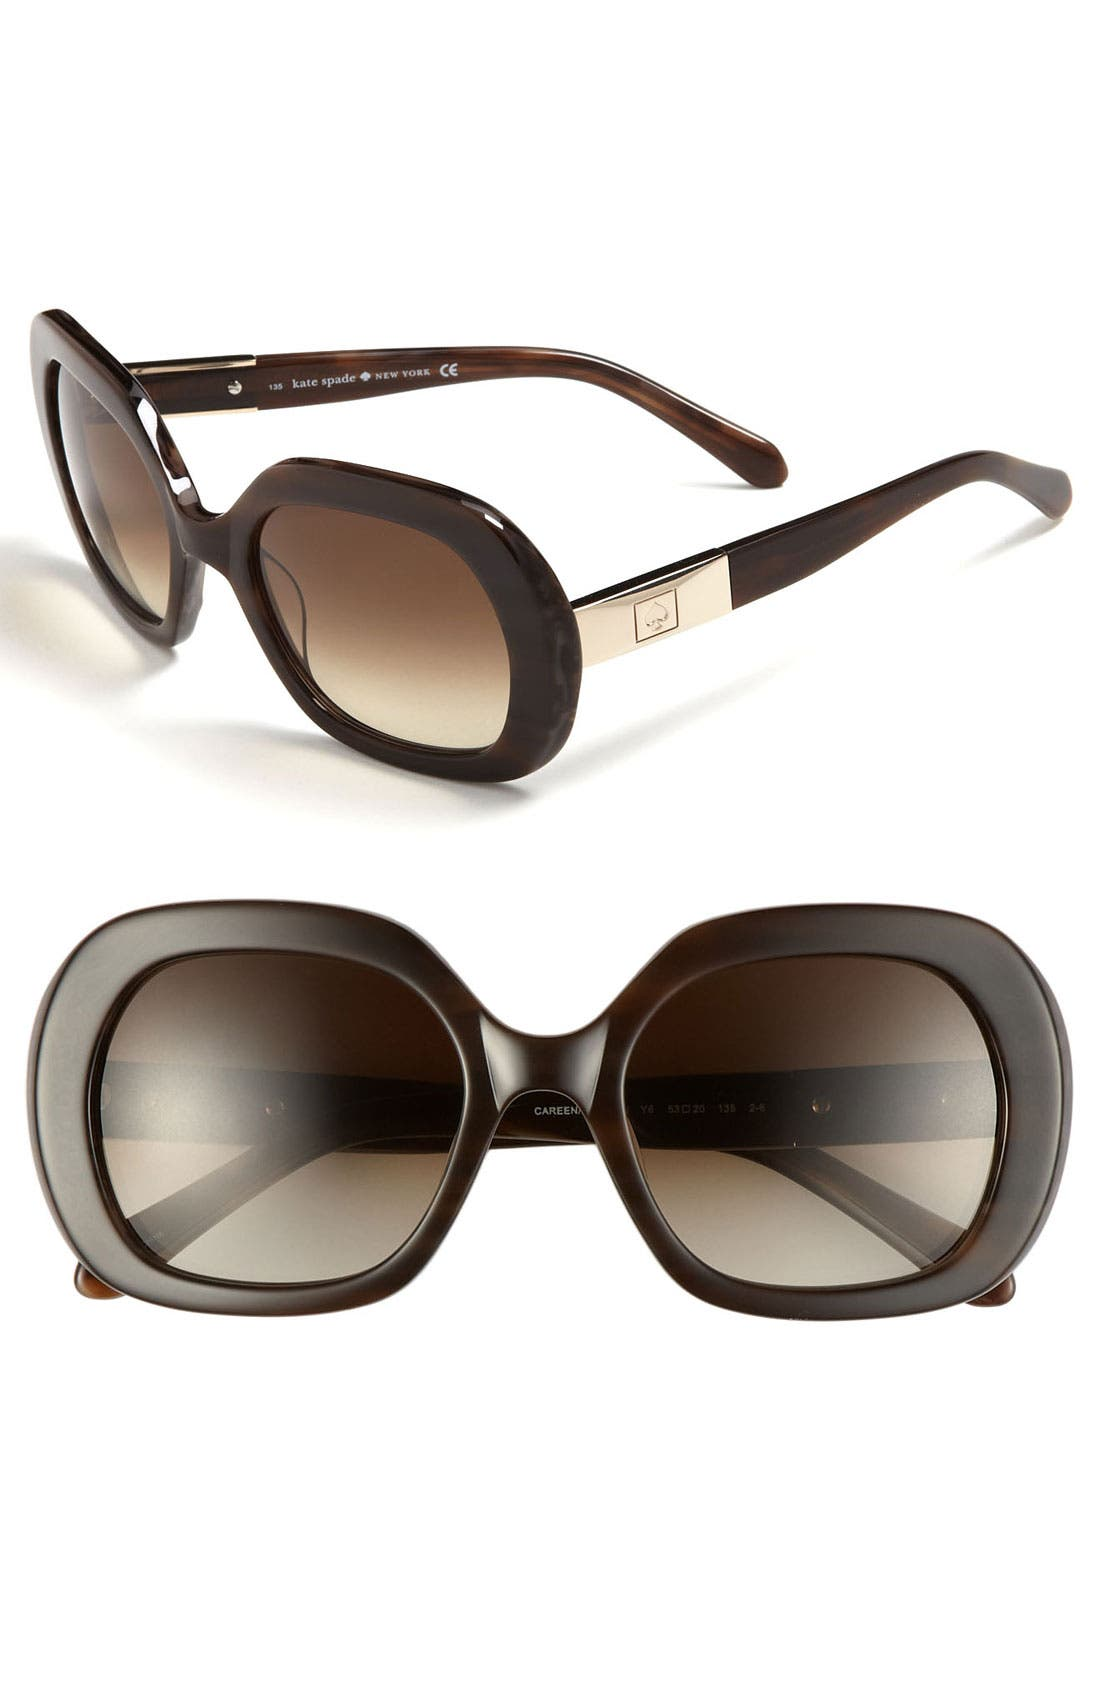 Main Image - kate spade new york 'careen' 53mm sunglasses